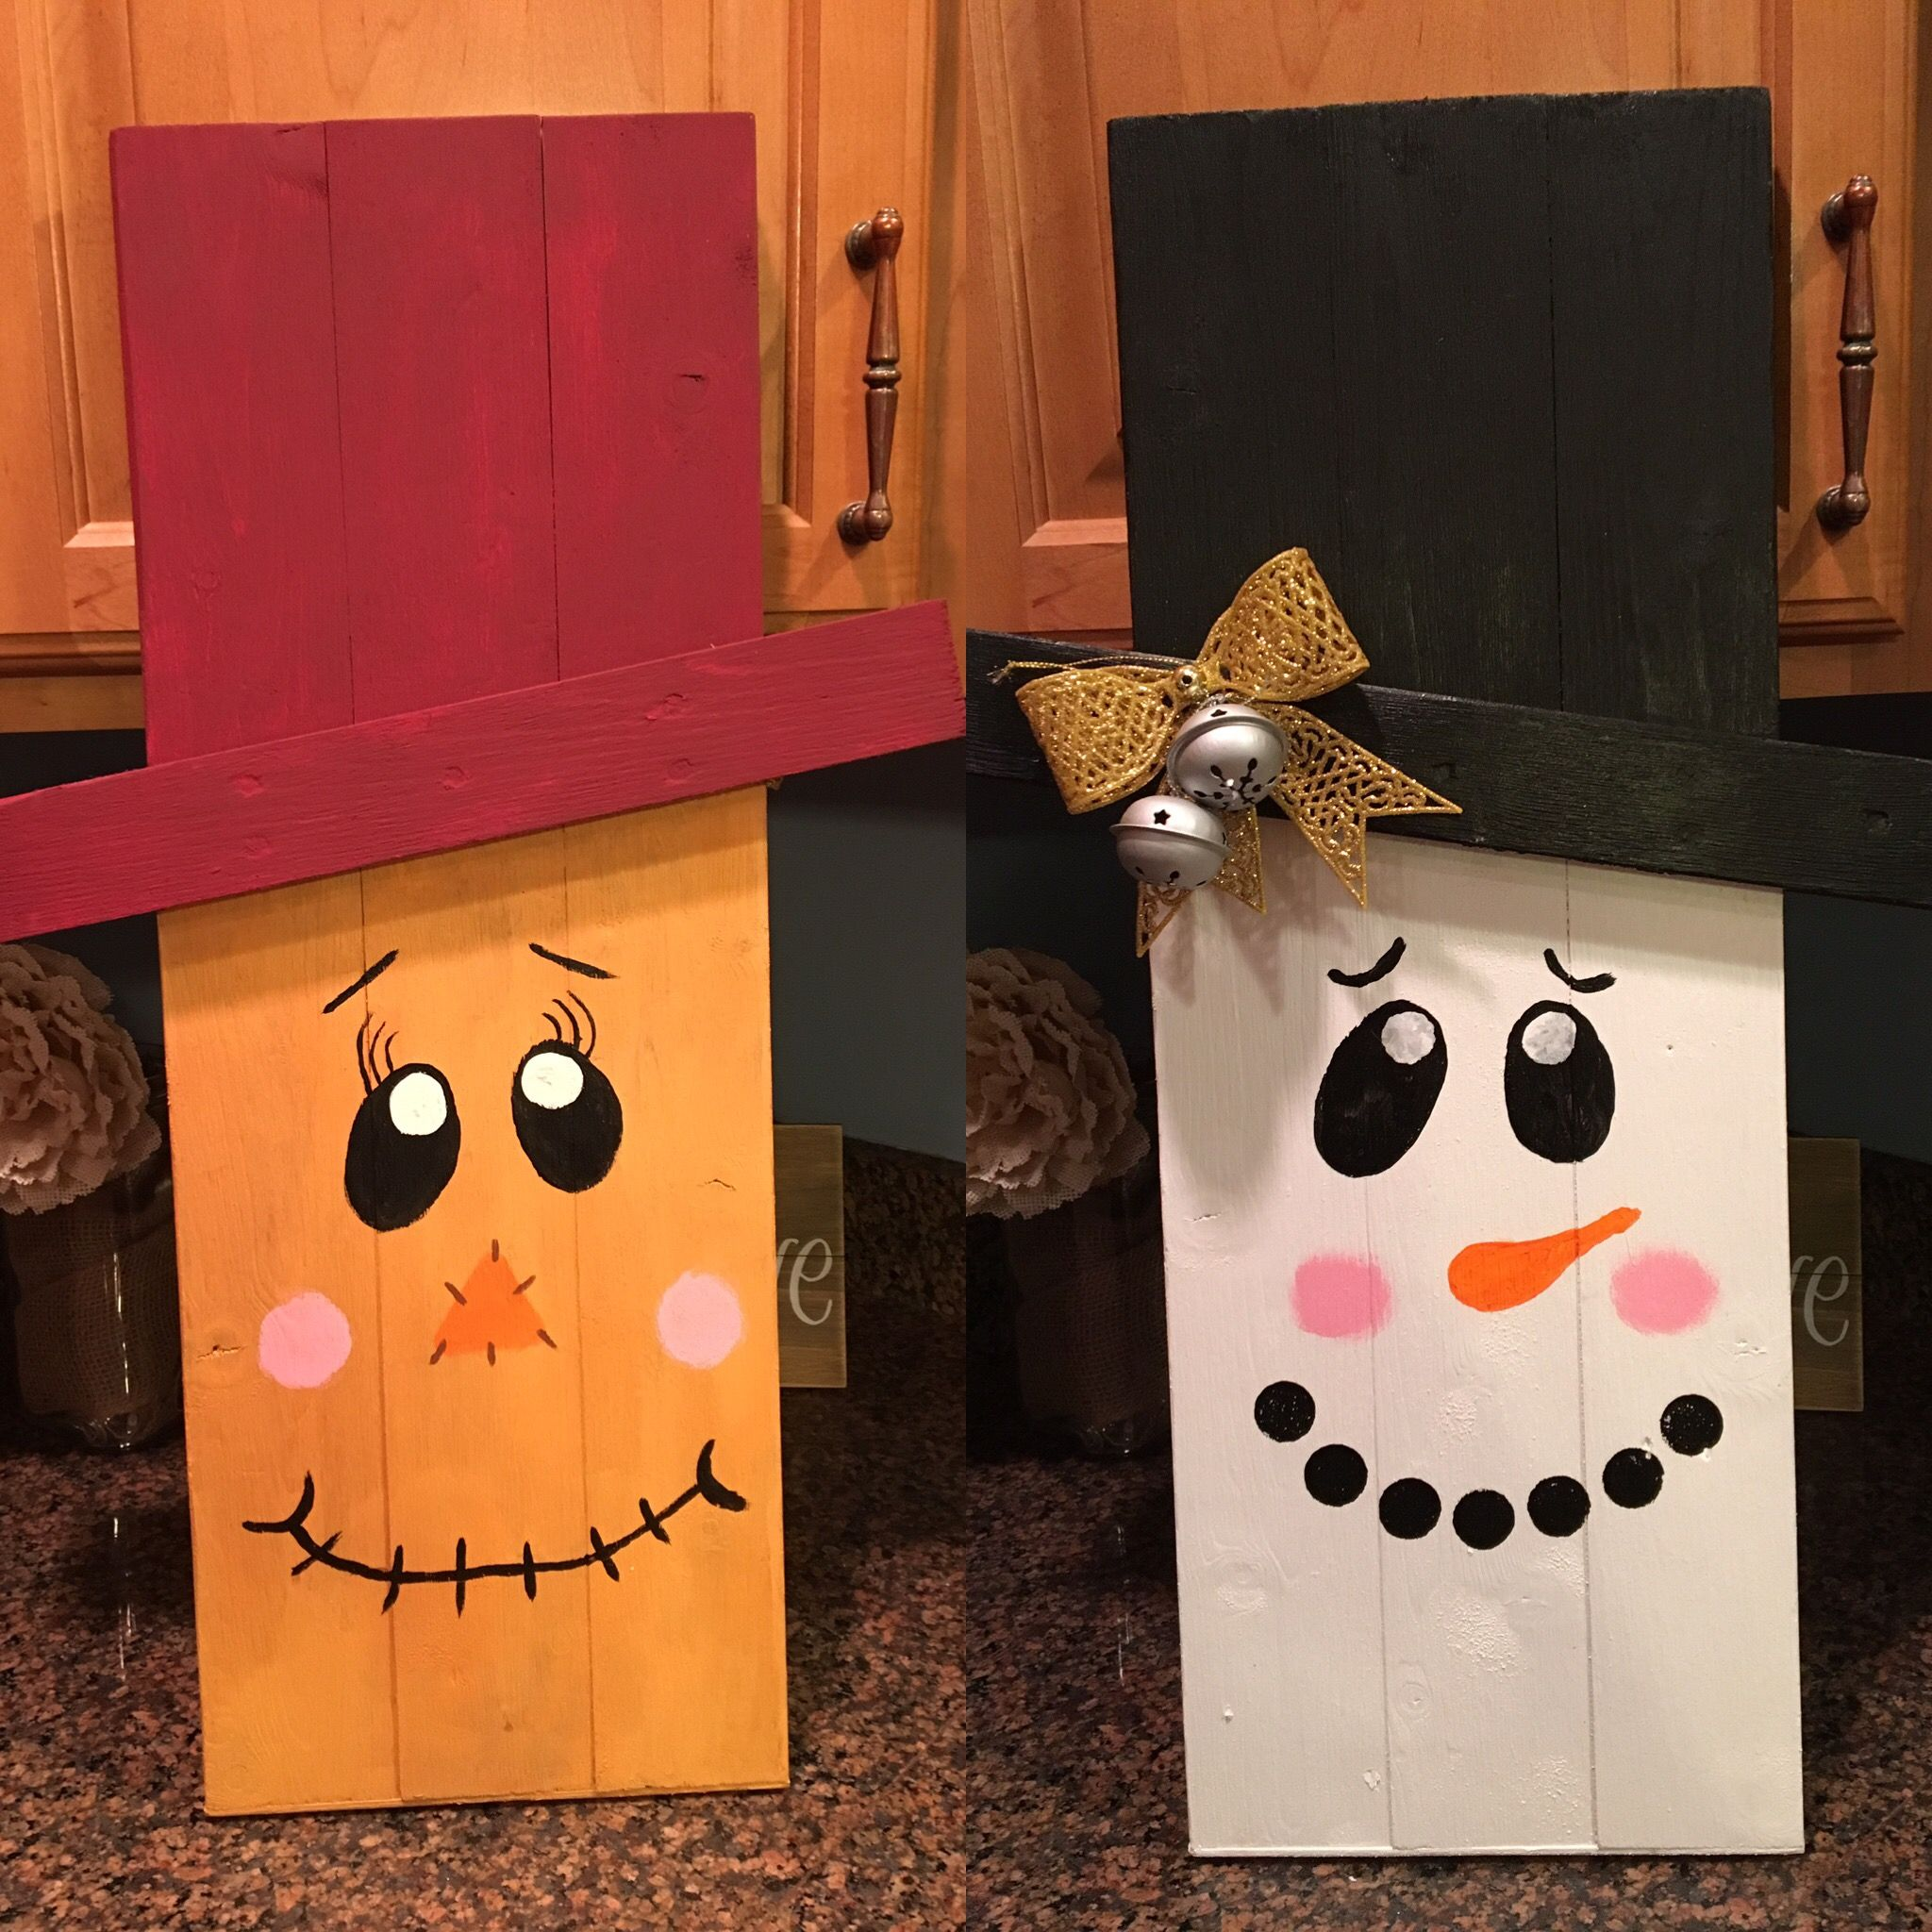 Discount Home Decor Catalogs: Reversible Wooden Snowman/scarecrow